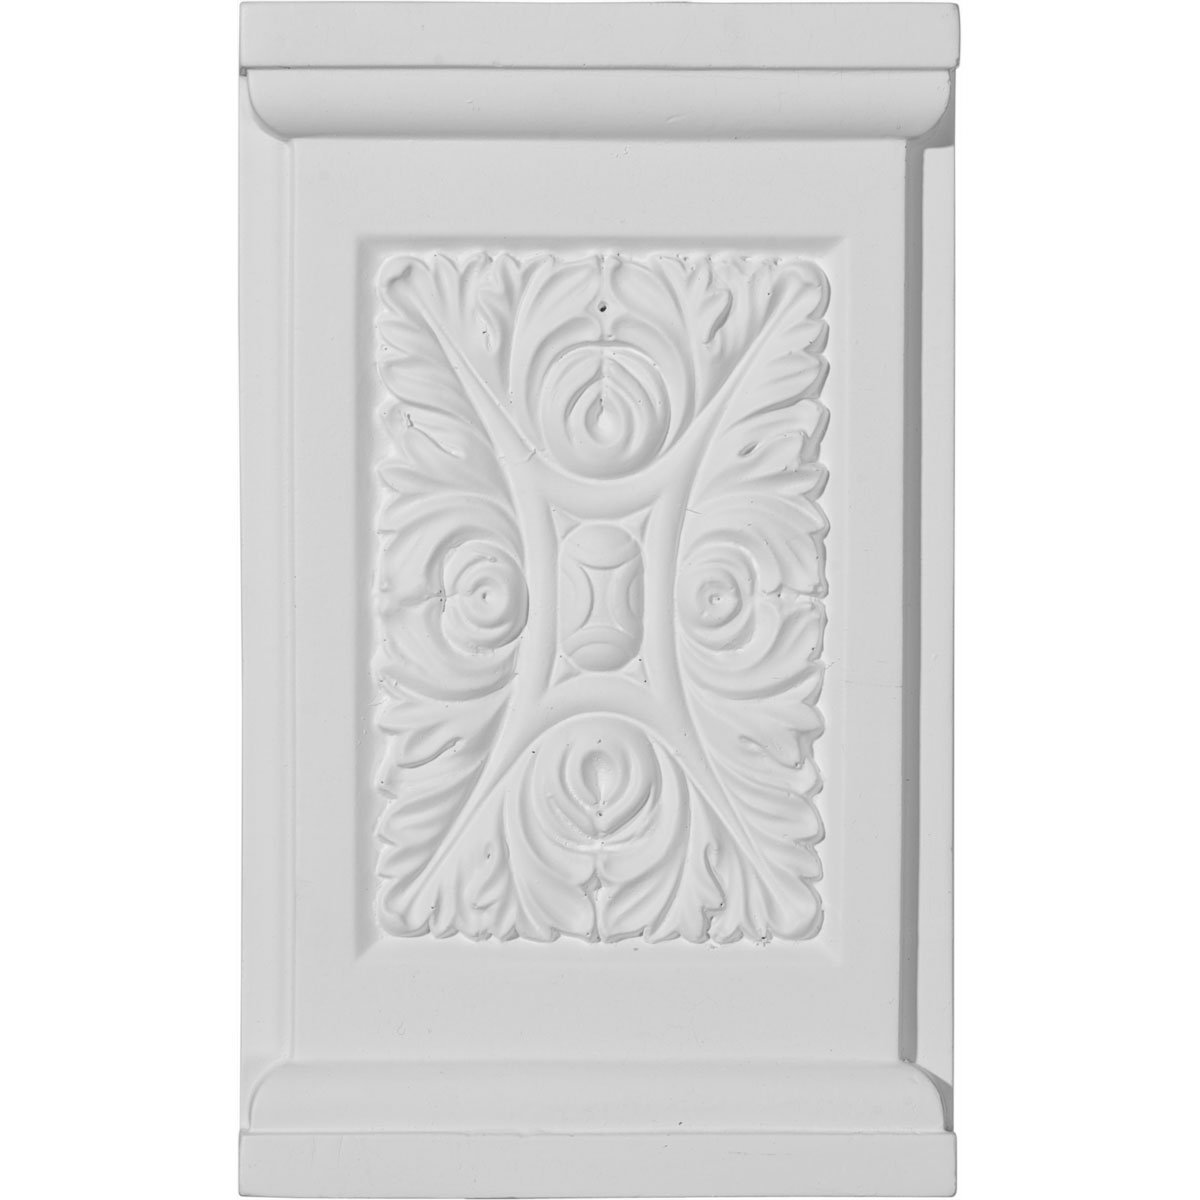 Ekena PB05X08X01ME 5 1/4-Inch Width x 8 5/8-Inch Height x 1 1/4-Inch Projection Medway Plinth Block - Primed